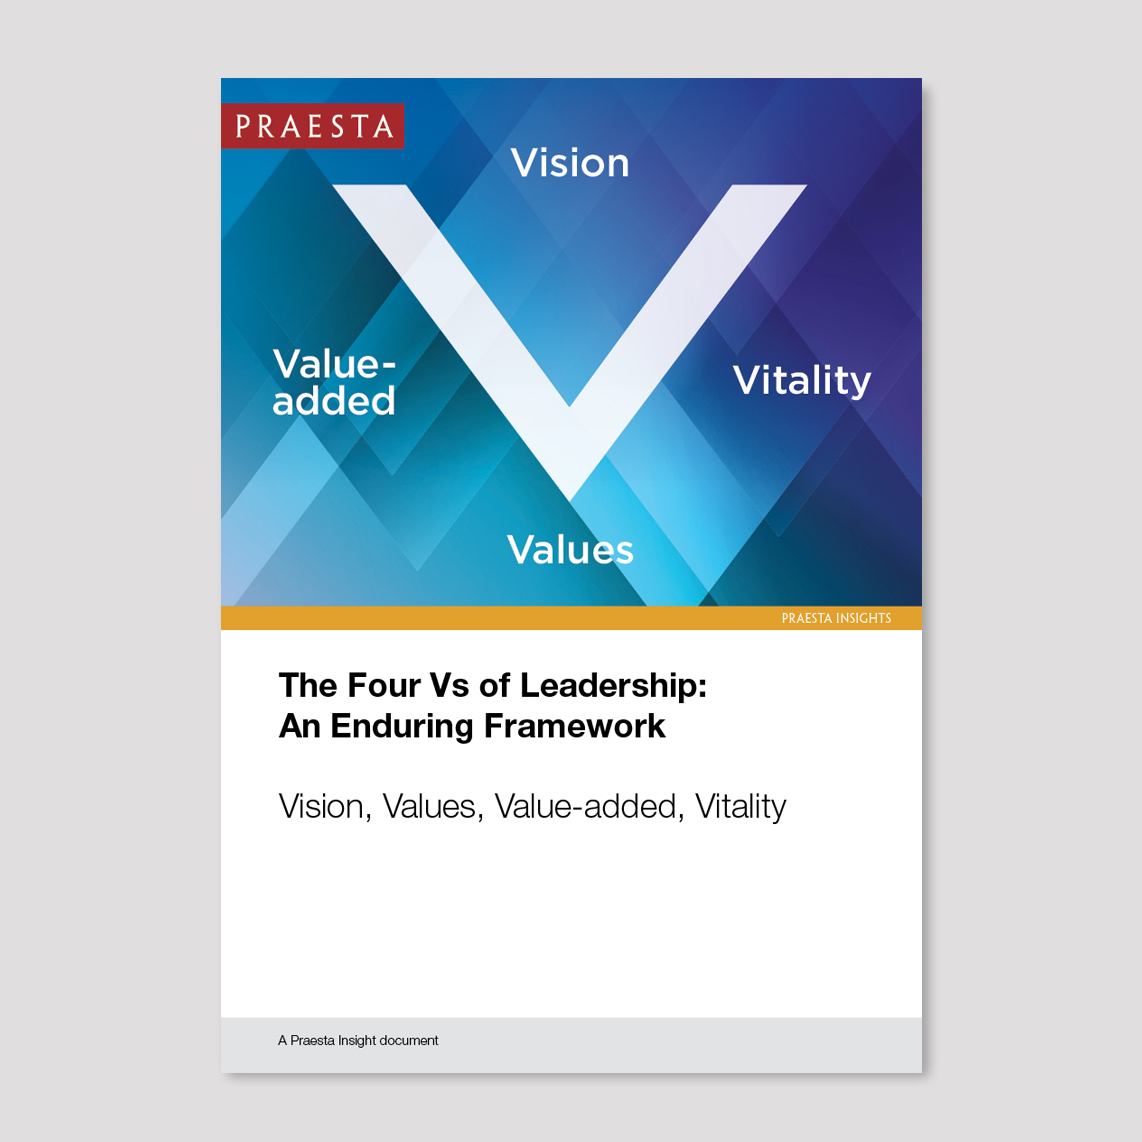 The Four Vs of Leadership: An Enduring Framework   Many leaders find it useful to have a framework within which to develop their own authentic leadership beliefs and narrative. The Four Vs of Leadership (vision, values, value-added and vitality) have proved to be an enduring framework for both individuals and teams.   Download PDF